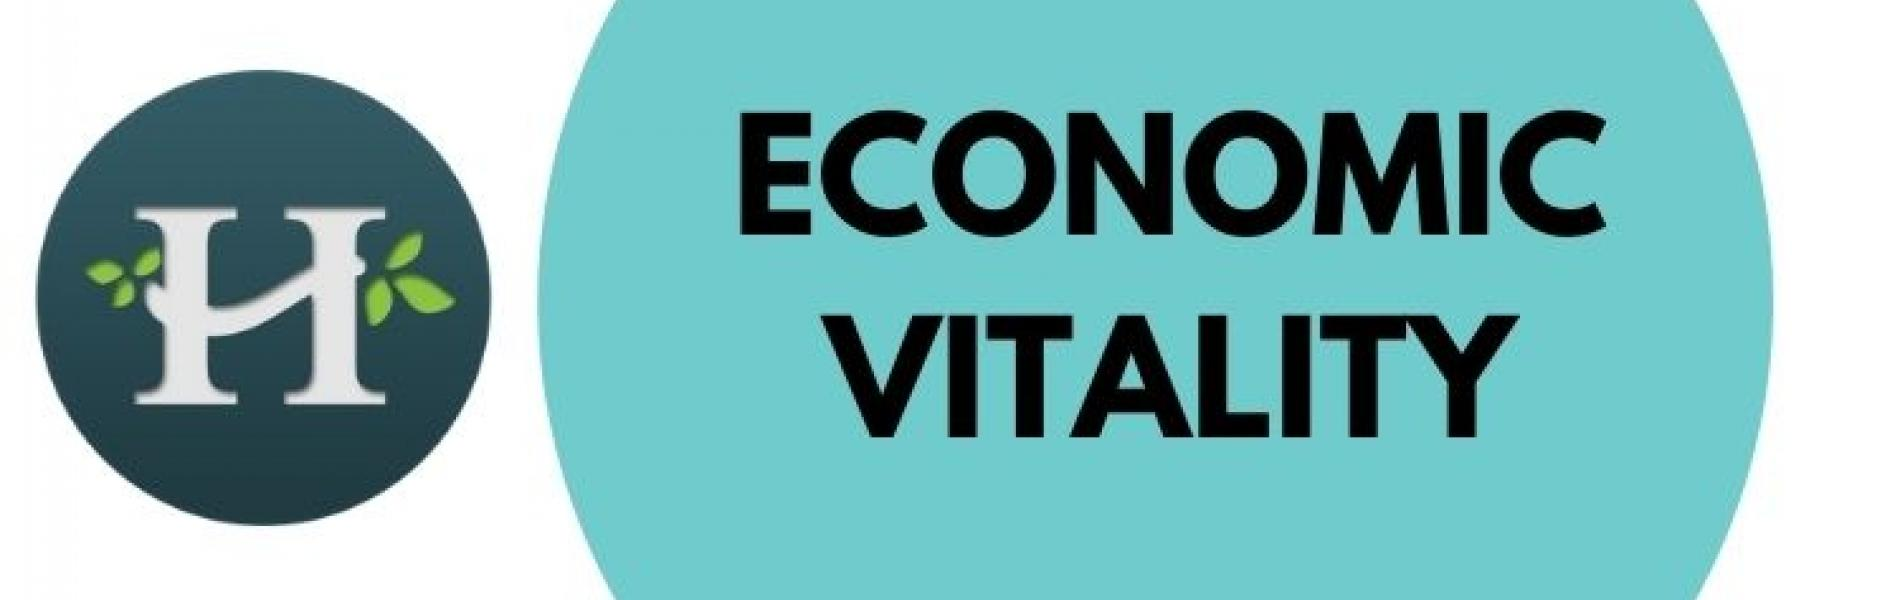 Economic Vitality meeting logo